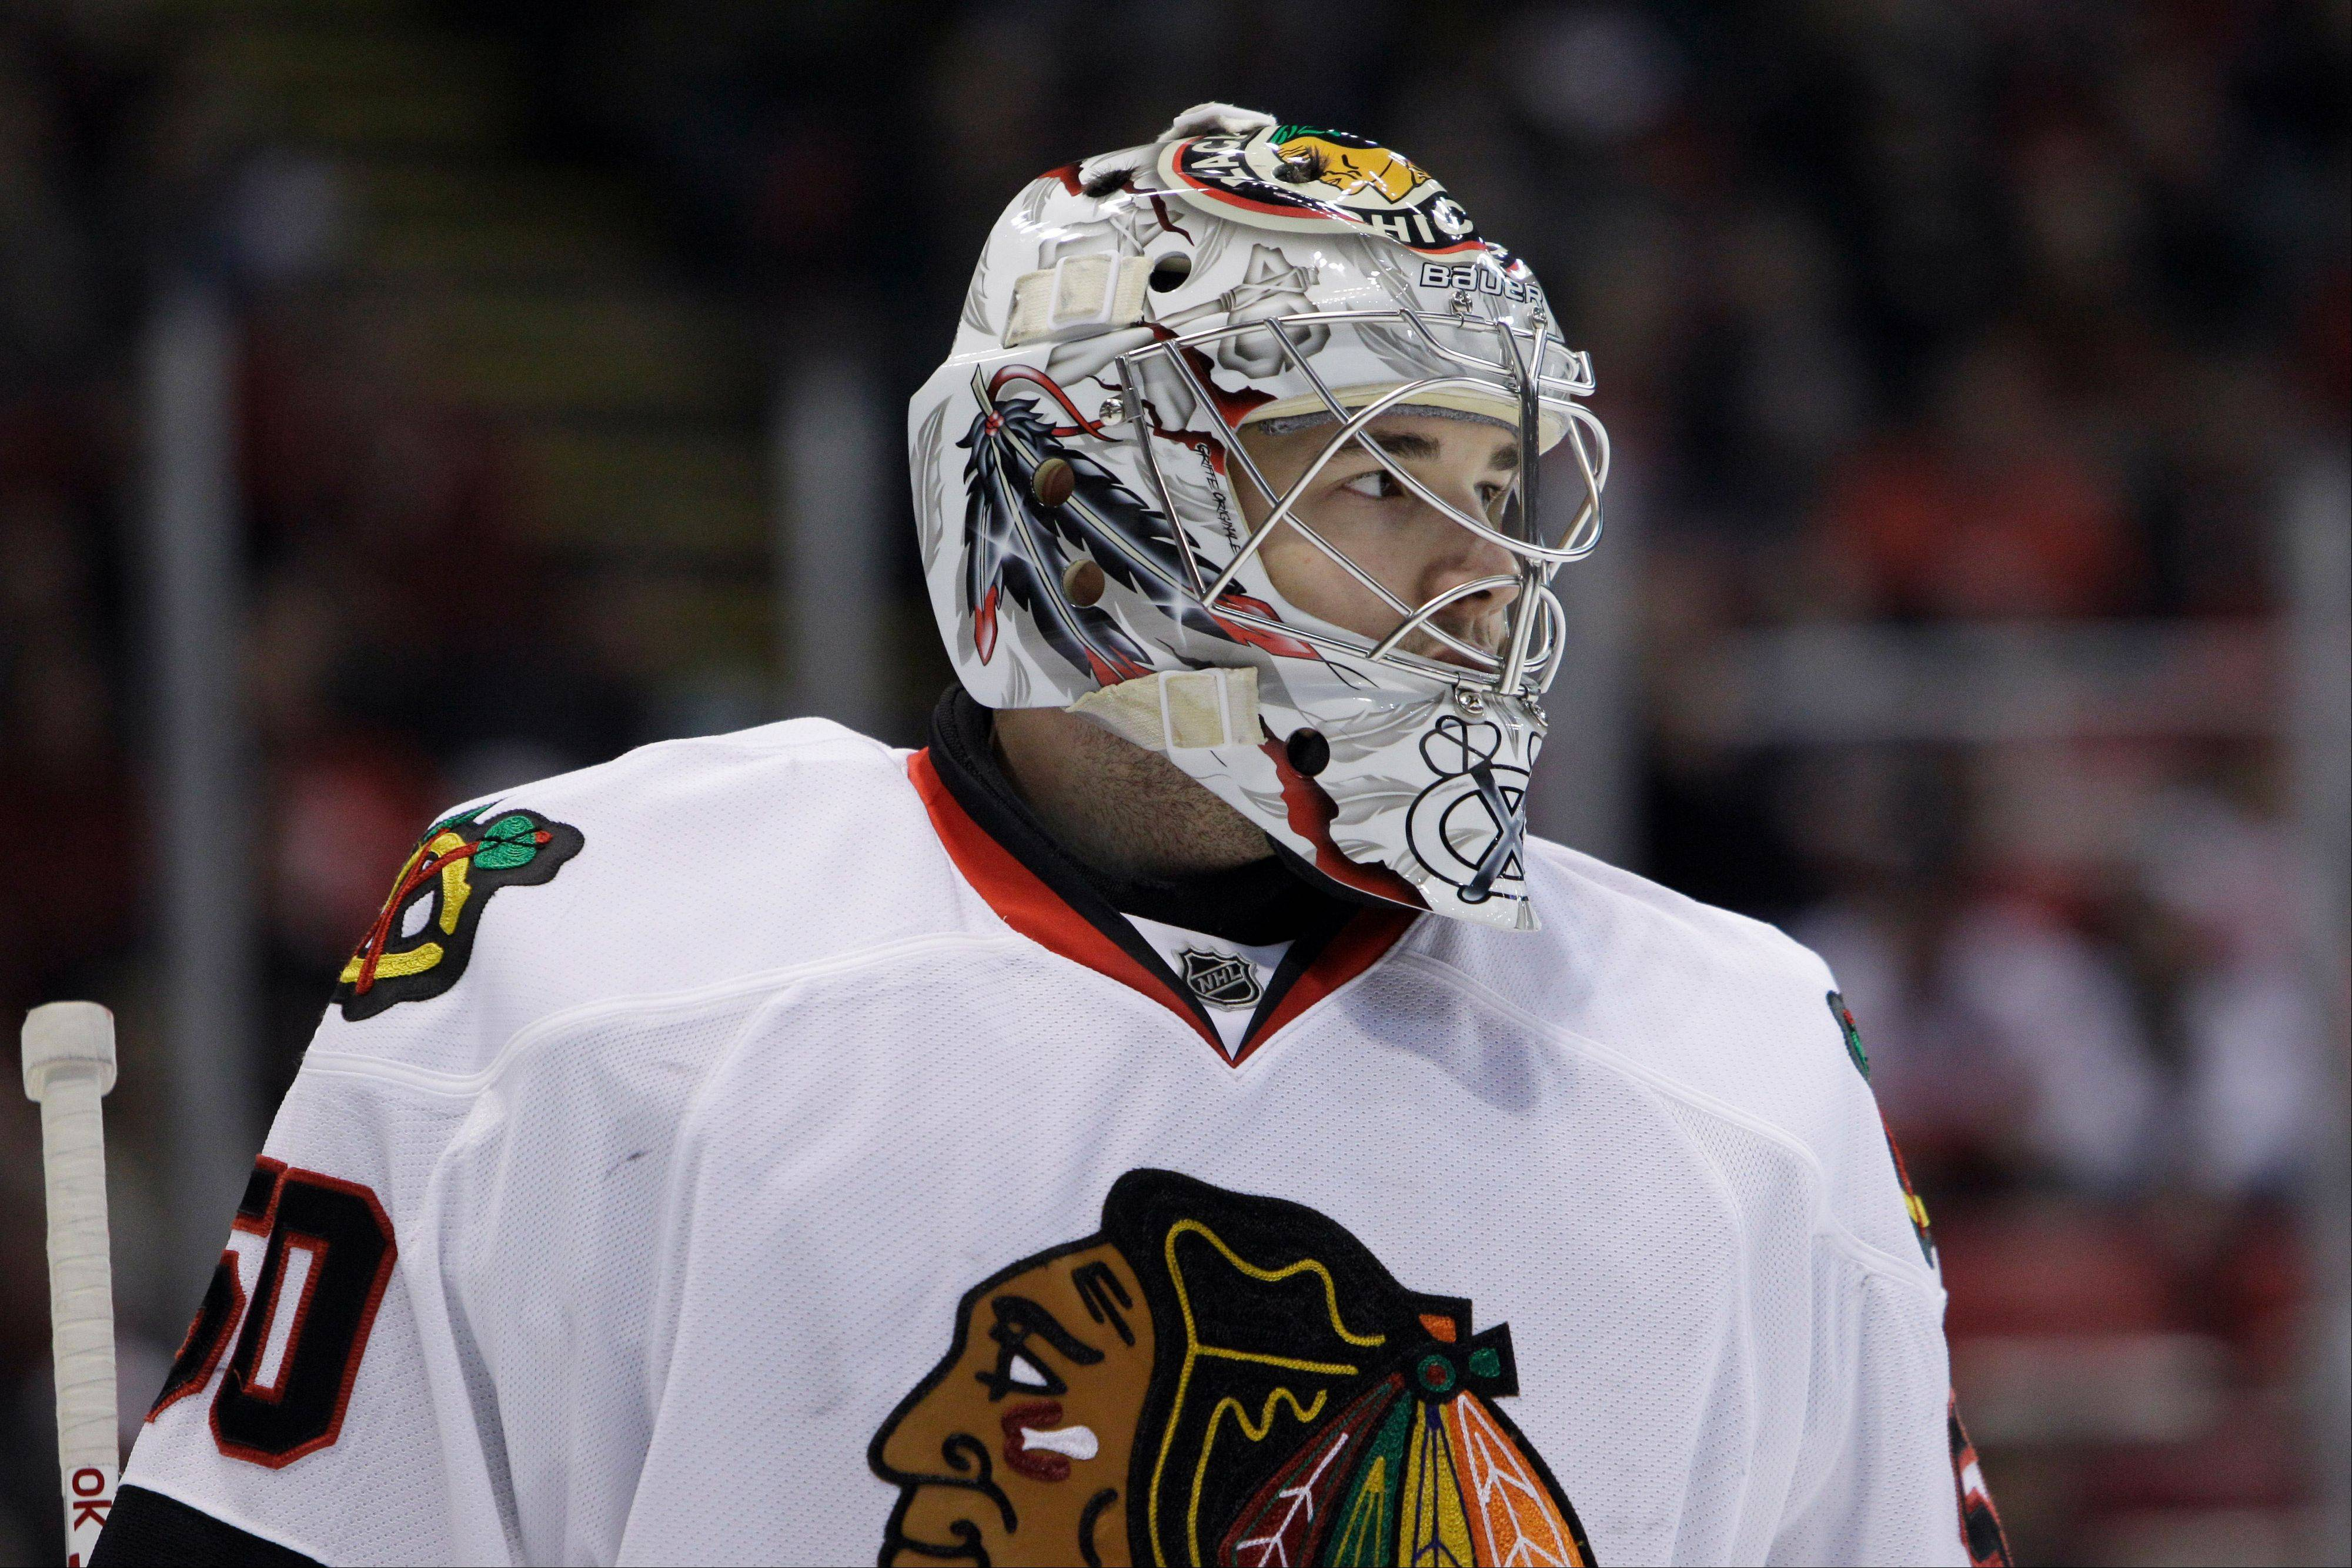 Although he won 30 games last season for the Blackhawks, goalie Corey Crawford says he's focusing on providing more consistency this season.